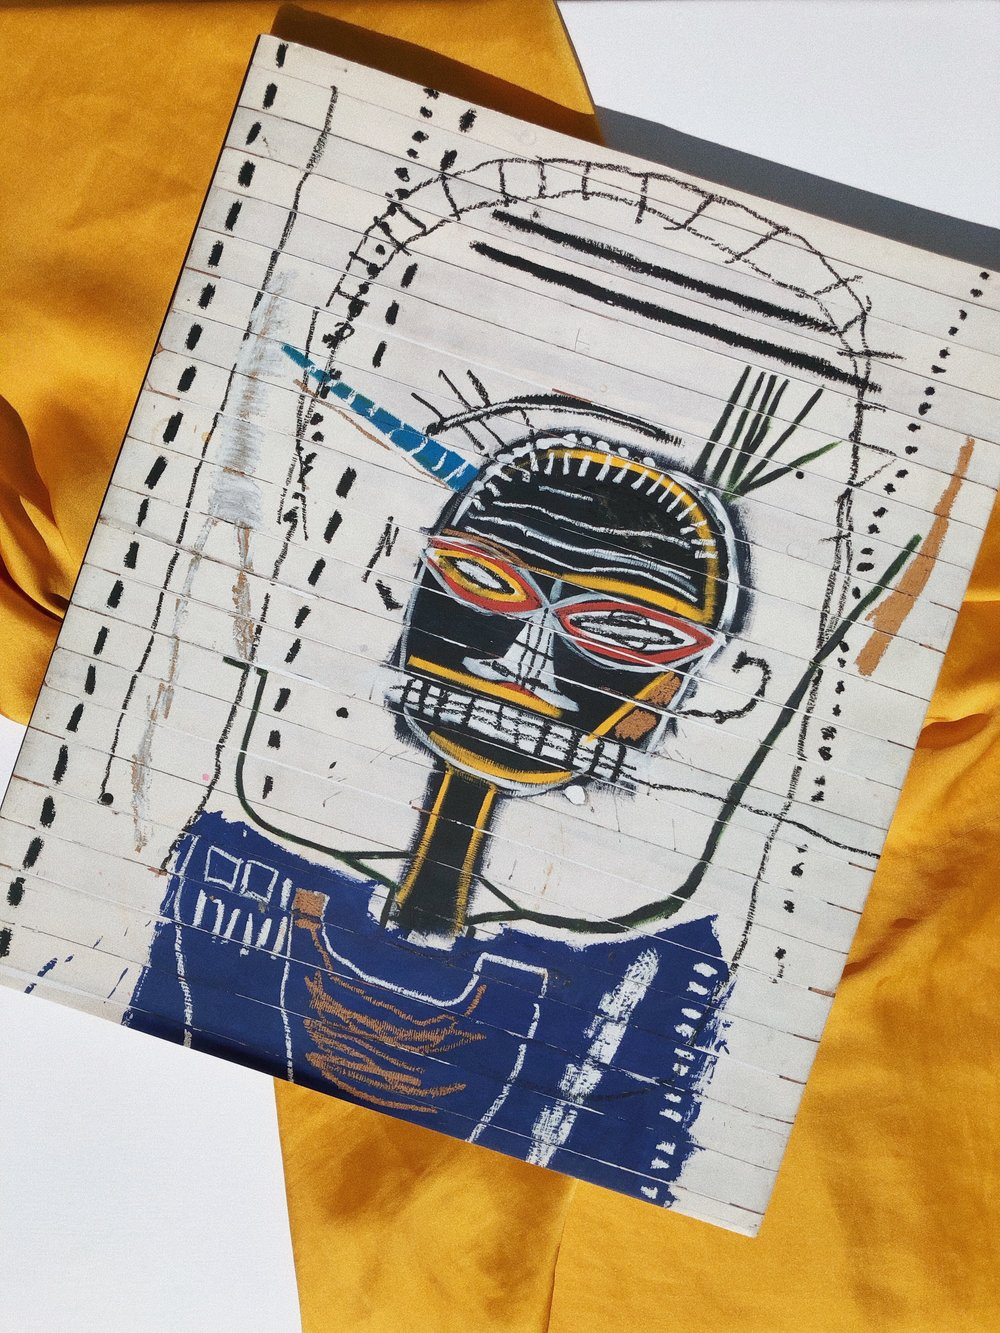 I WOULD NEVER CALL MYSELF AN ART CONAISSEUR, BUT IF I KNOW ONE ARTIST, IT'S JEAN-MICHEL BASQUIAT. I ABSOLUTELY ADORE HIM - AND   THIS BOOK   ABOUT HIM. IT'S PRICY BUT WORTH IT AND IT STANDS OUT BEAUTIFULLY IN MY APARTMENT.-J